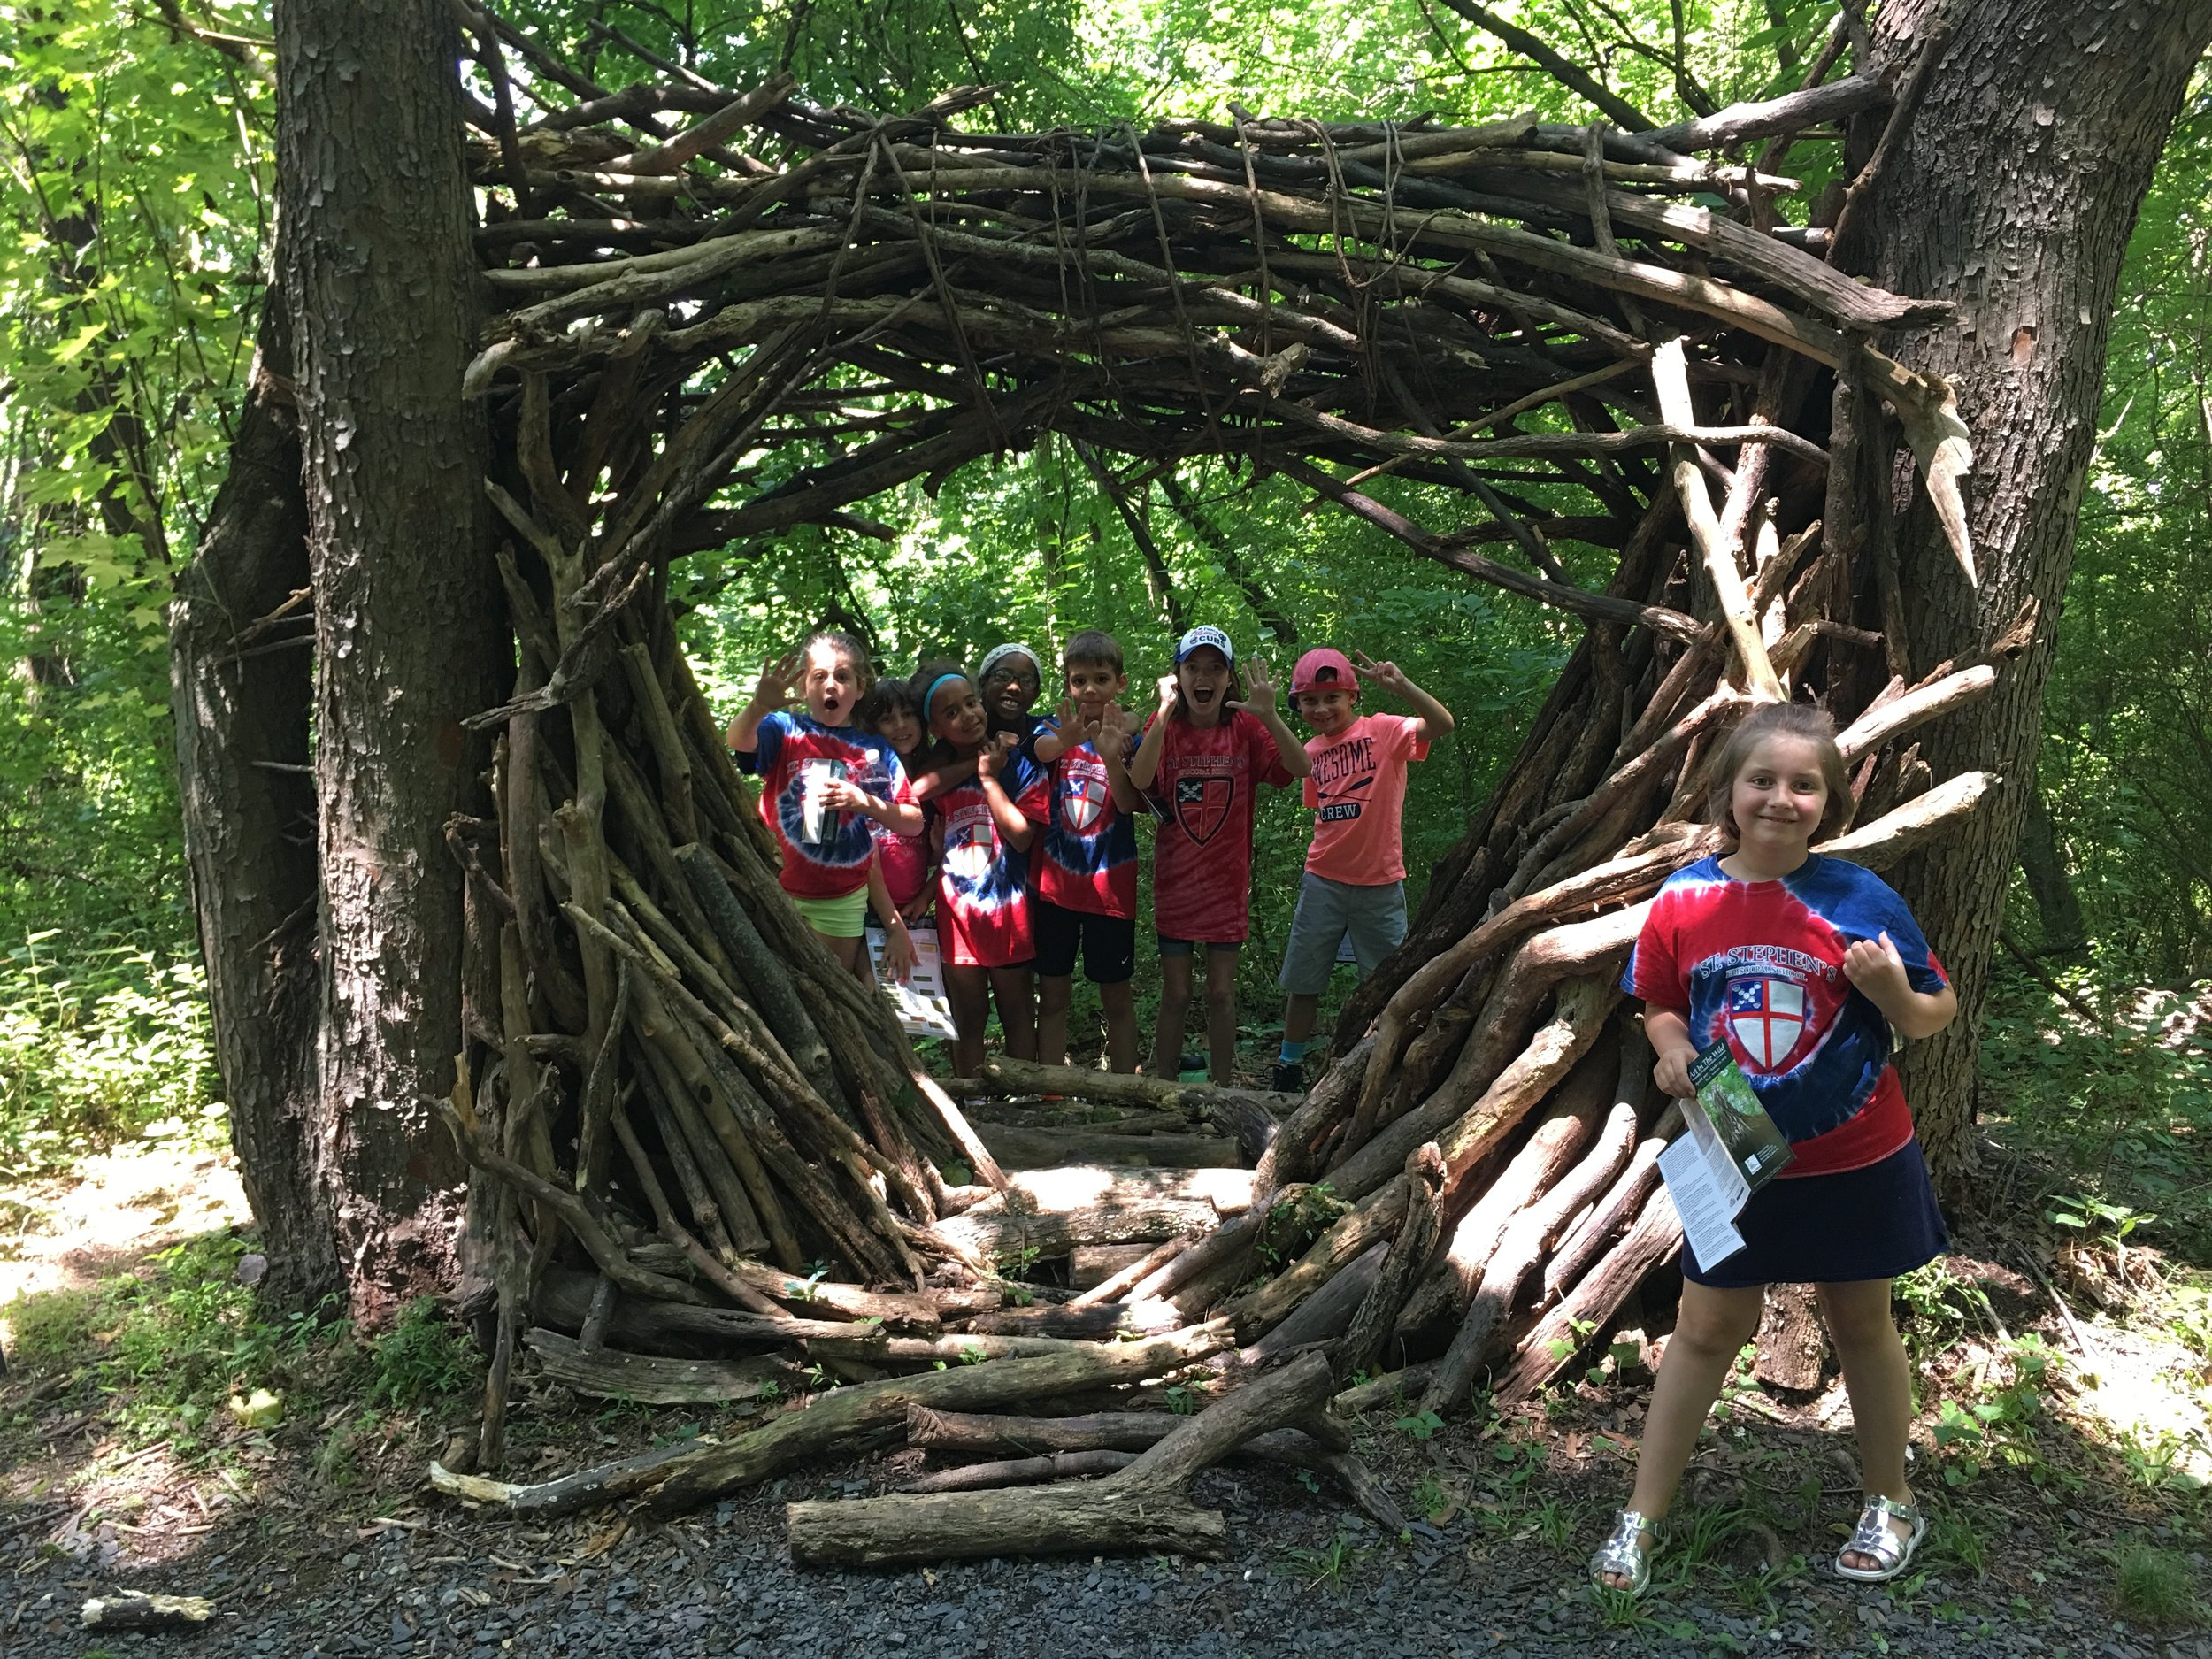 Off Campus Field Trips - Campers take weekly field trips to locations within and outside of the city. Past trips have included Wildwood Park, the Susquehanna Art Museum, Indian Echo Caverns, and the Whitaker Center. Campers also make weekly park and swimming trips.